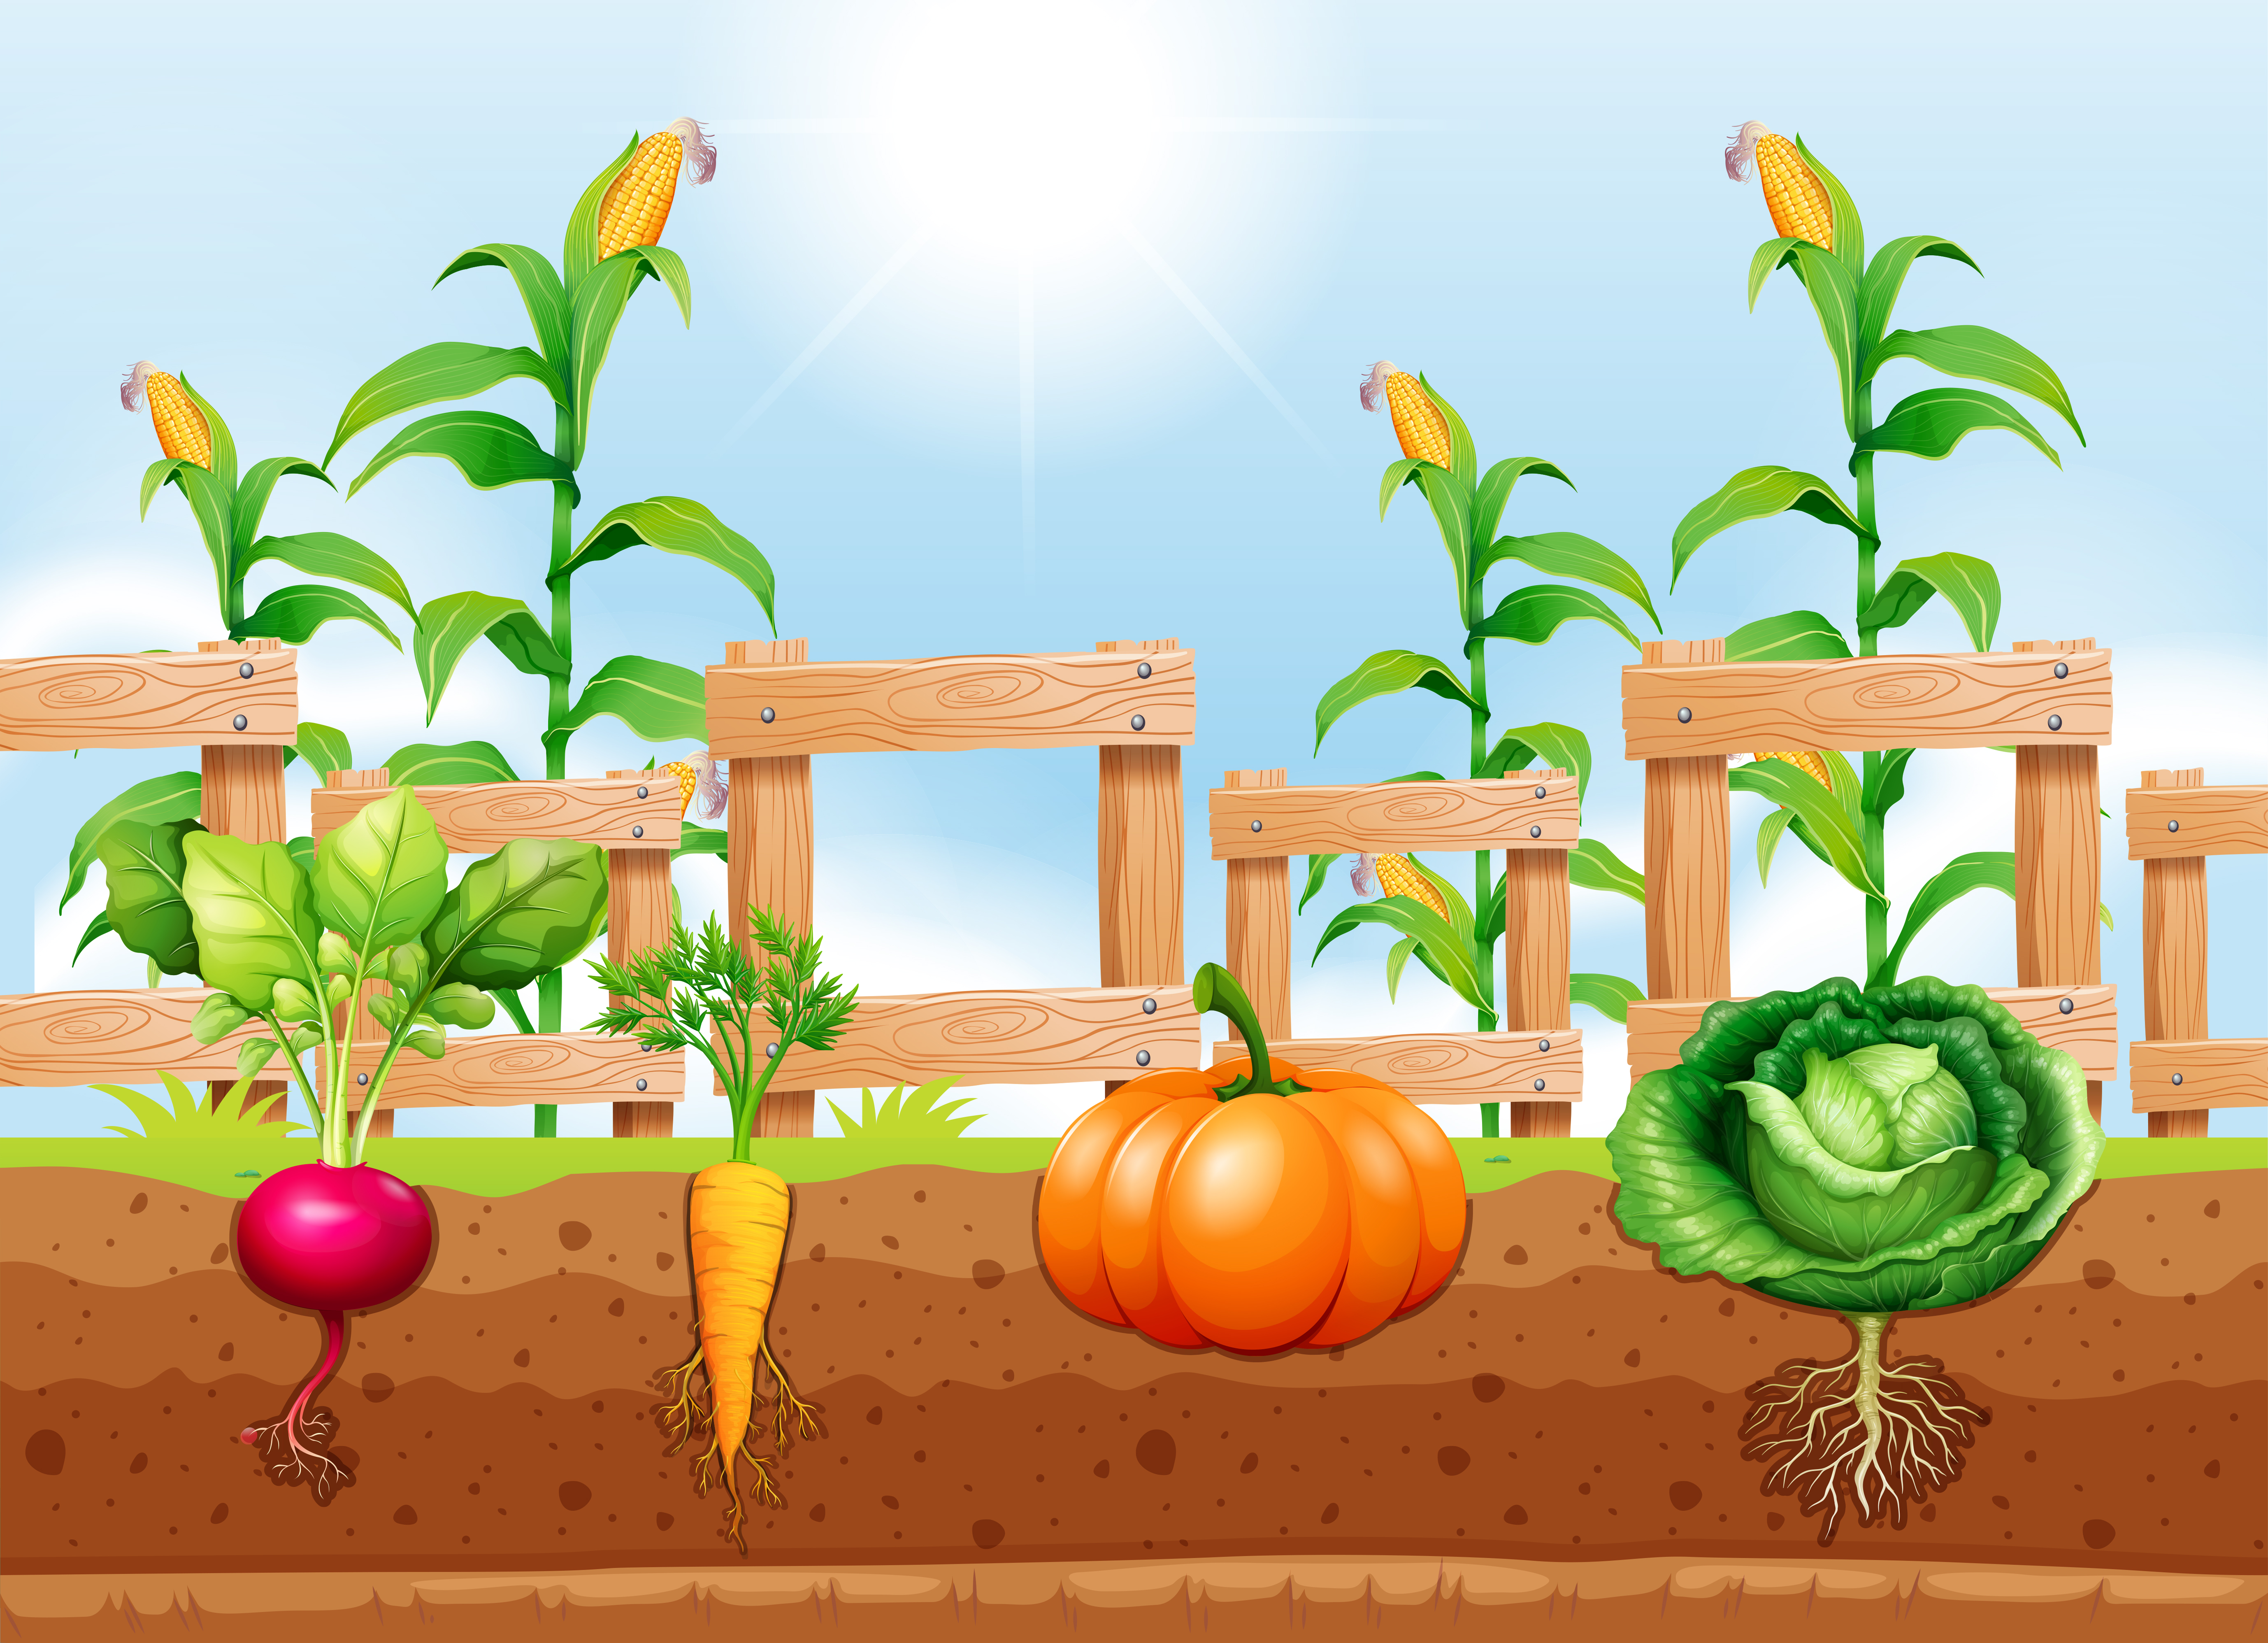 Agriculture Vegetables and Underground Root - Download ...